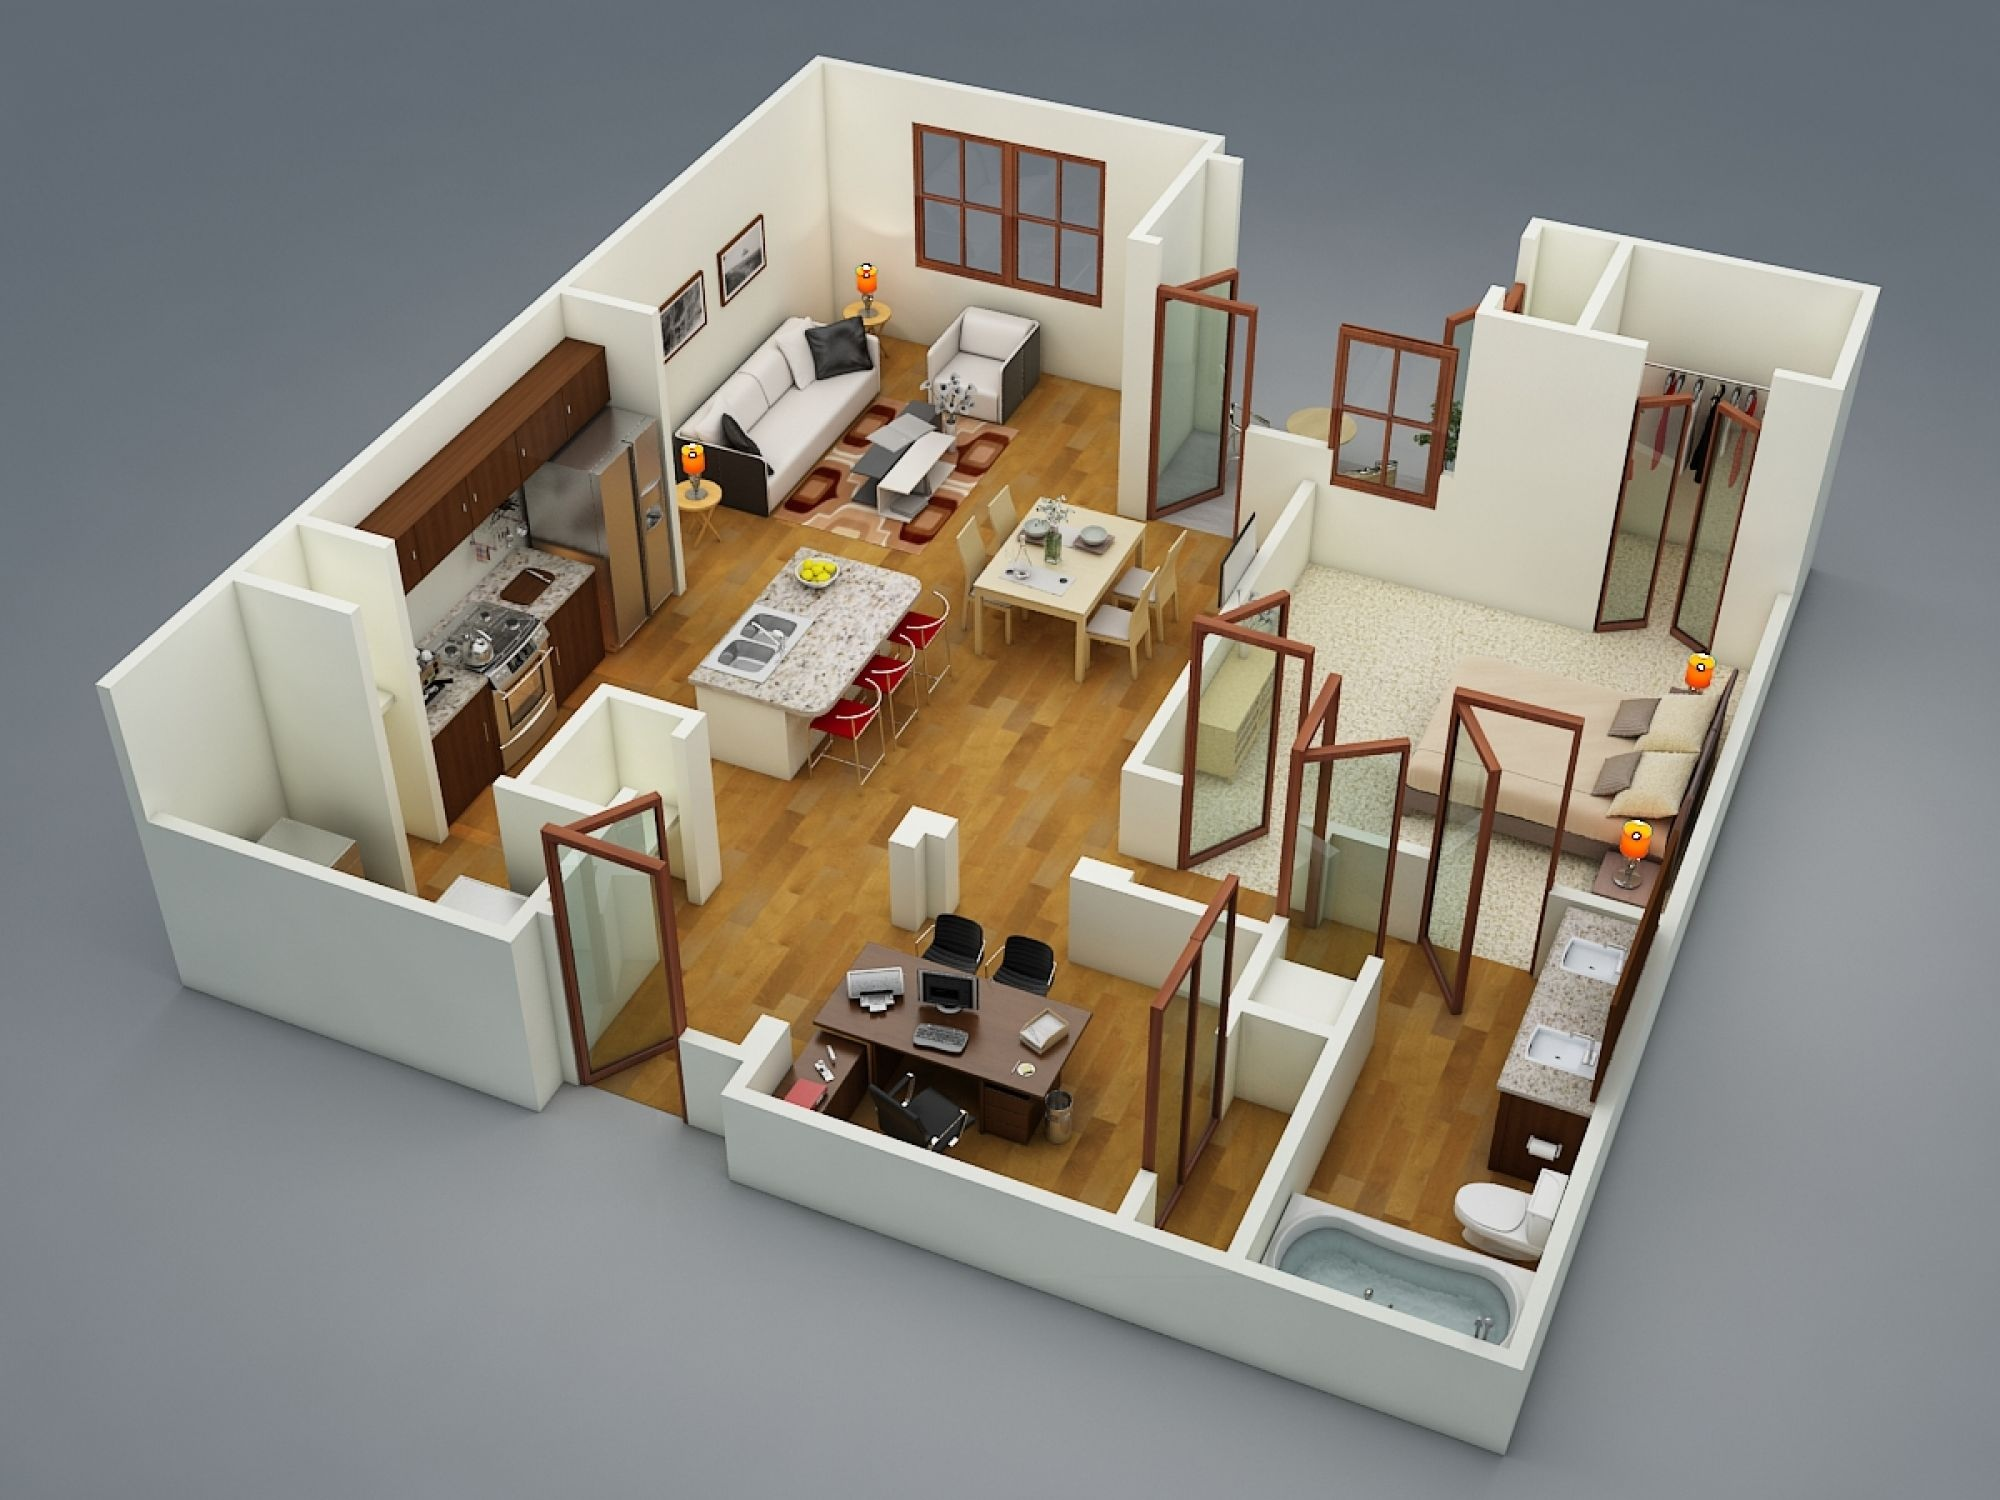 2 Bedroom Apartment Design Plans 1 bedroom apartment/house plans